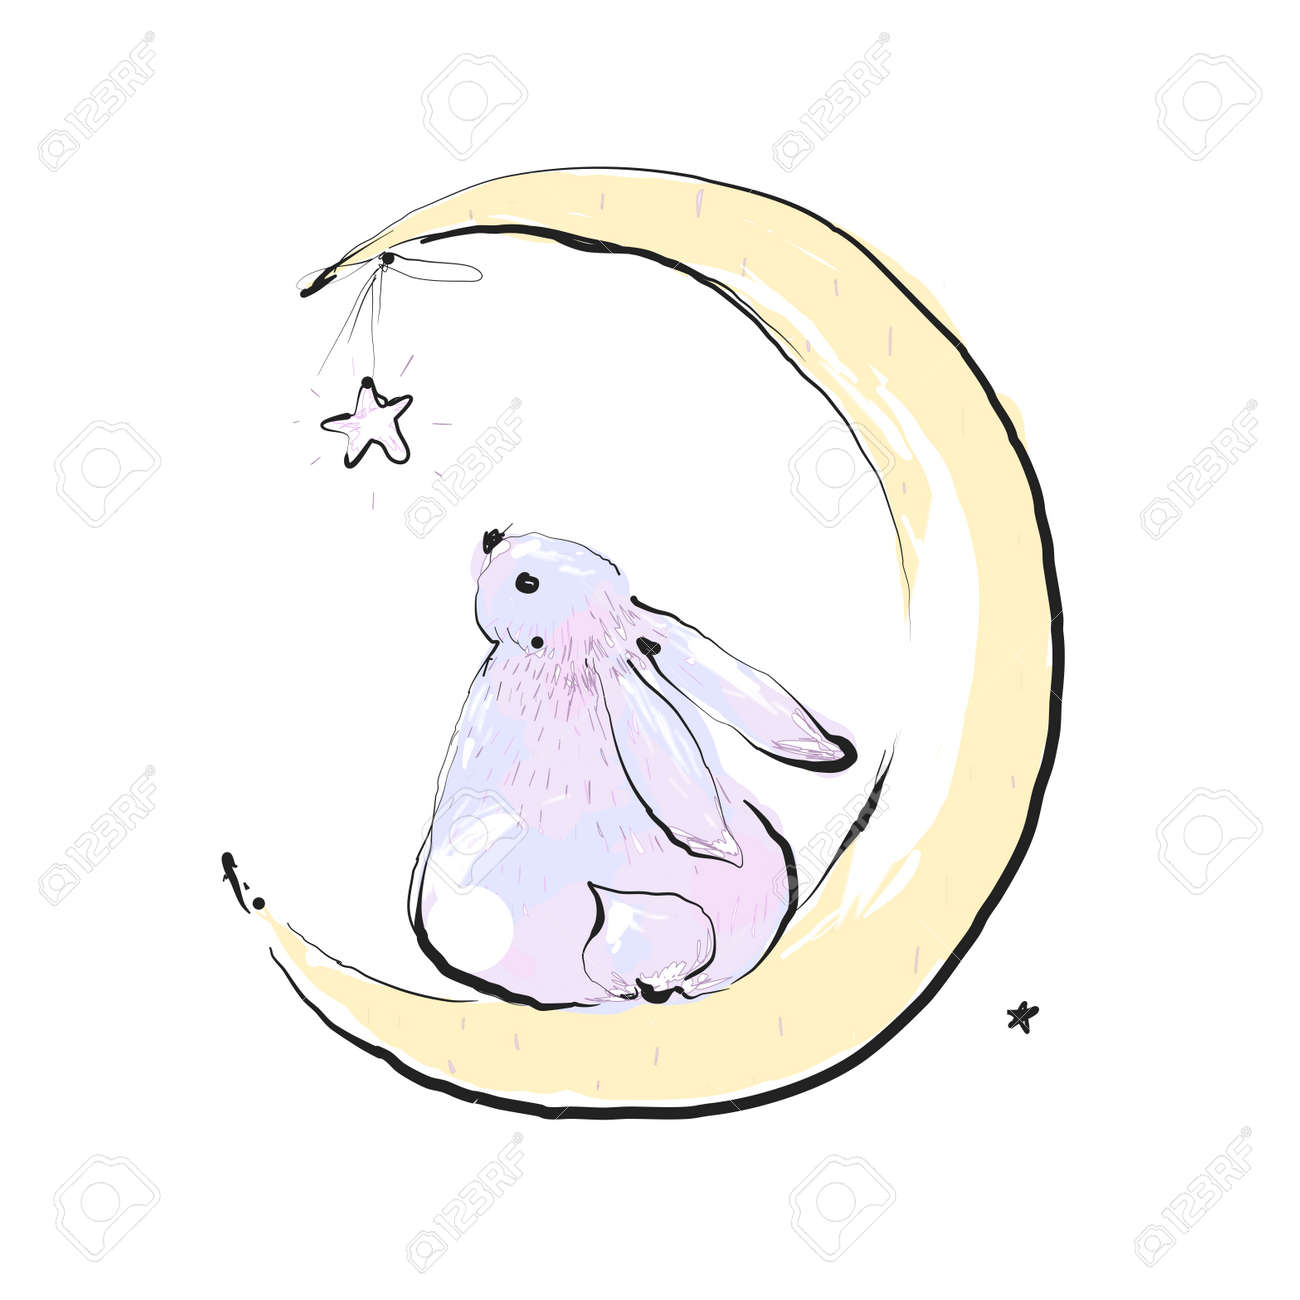 Bunny seating on the moon and watching star. Card with Cute bunny. Concept idea. Good night. Can be used for children. Vector Ilustration - 169291686